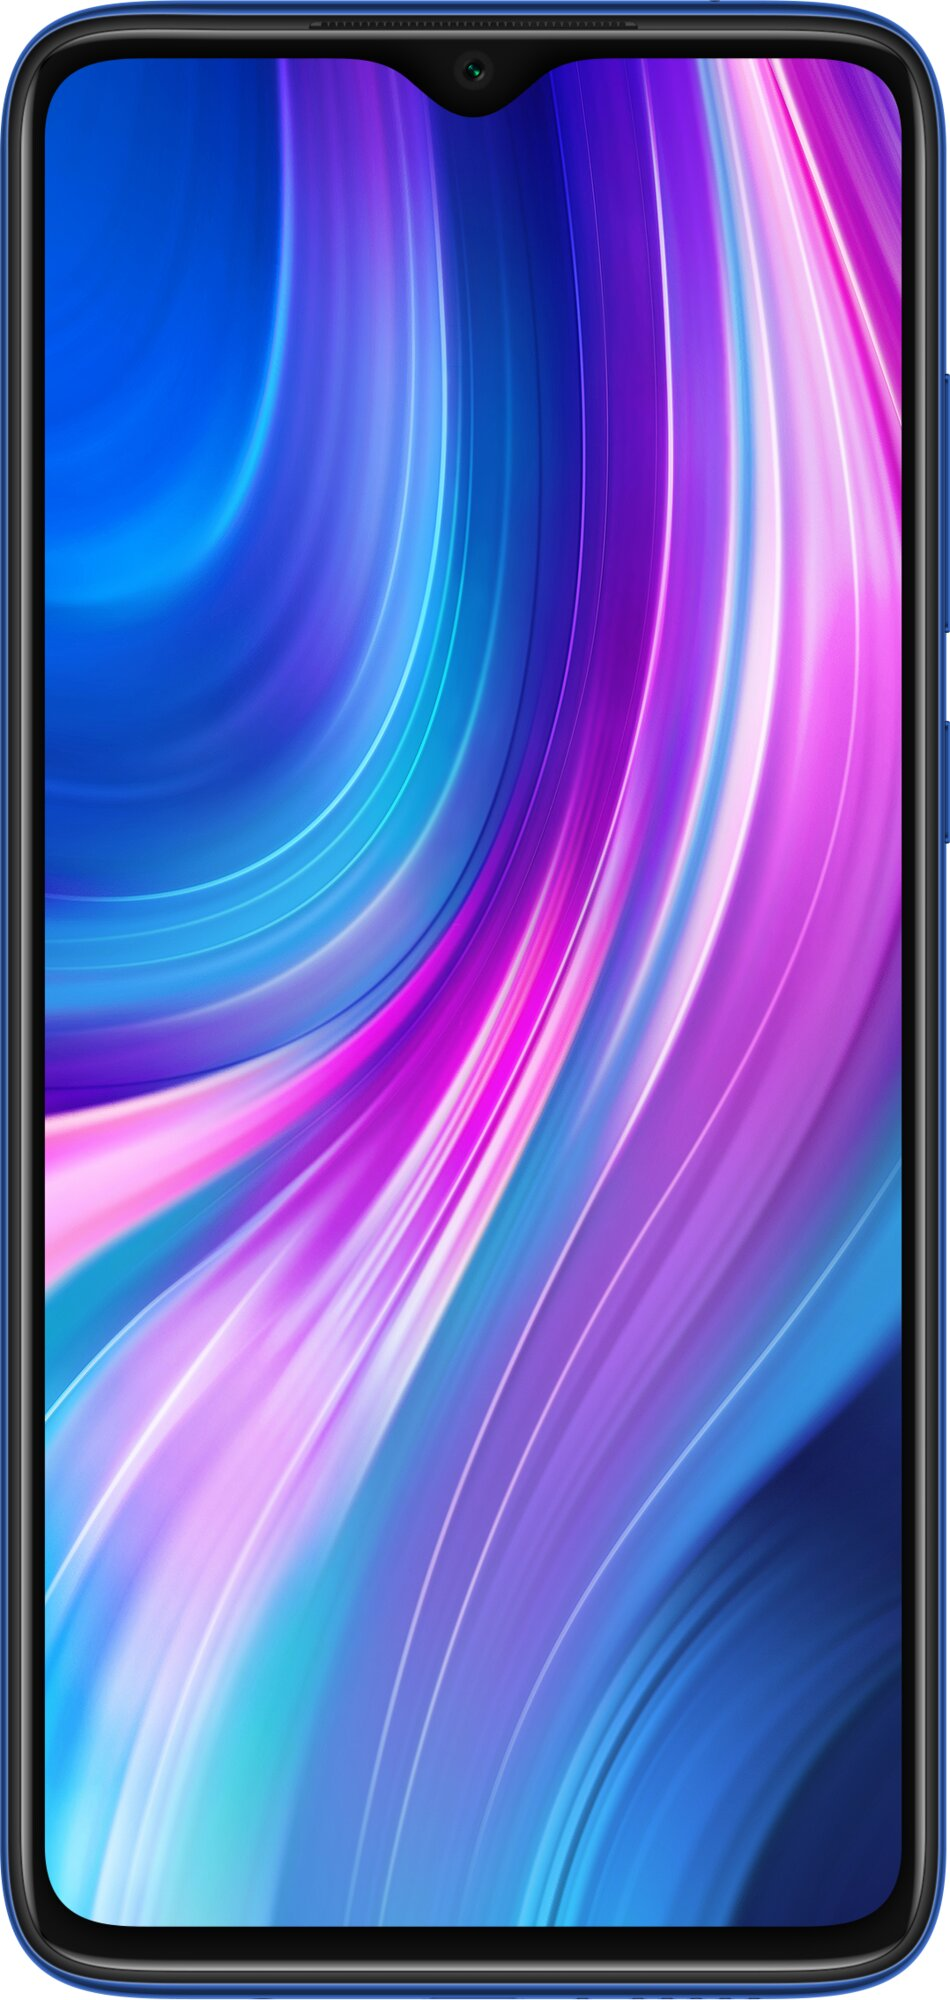 XIAOMI Redmi Note 8 Pro 6GB RAM 64GB Dual Sim Blue Global